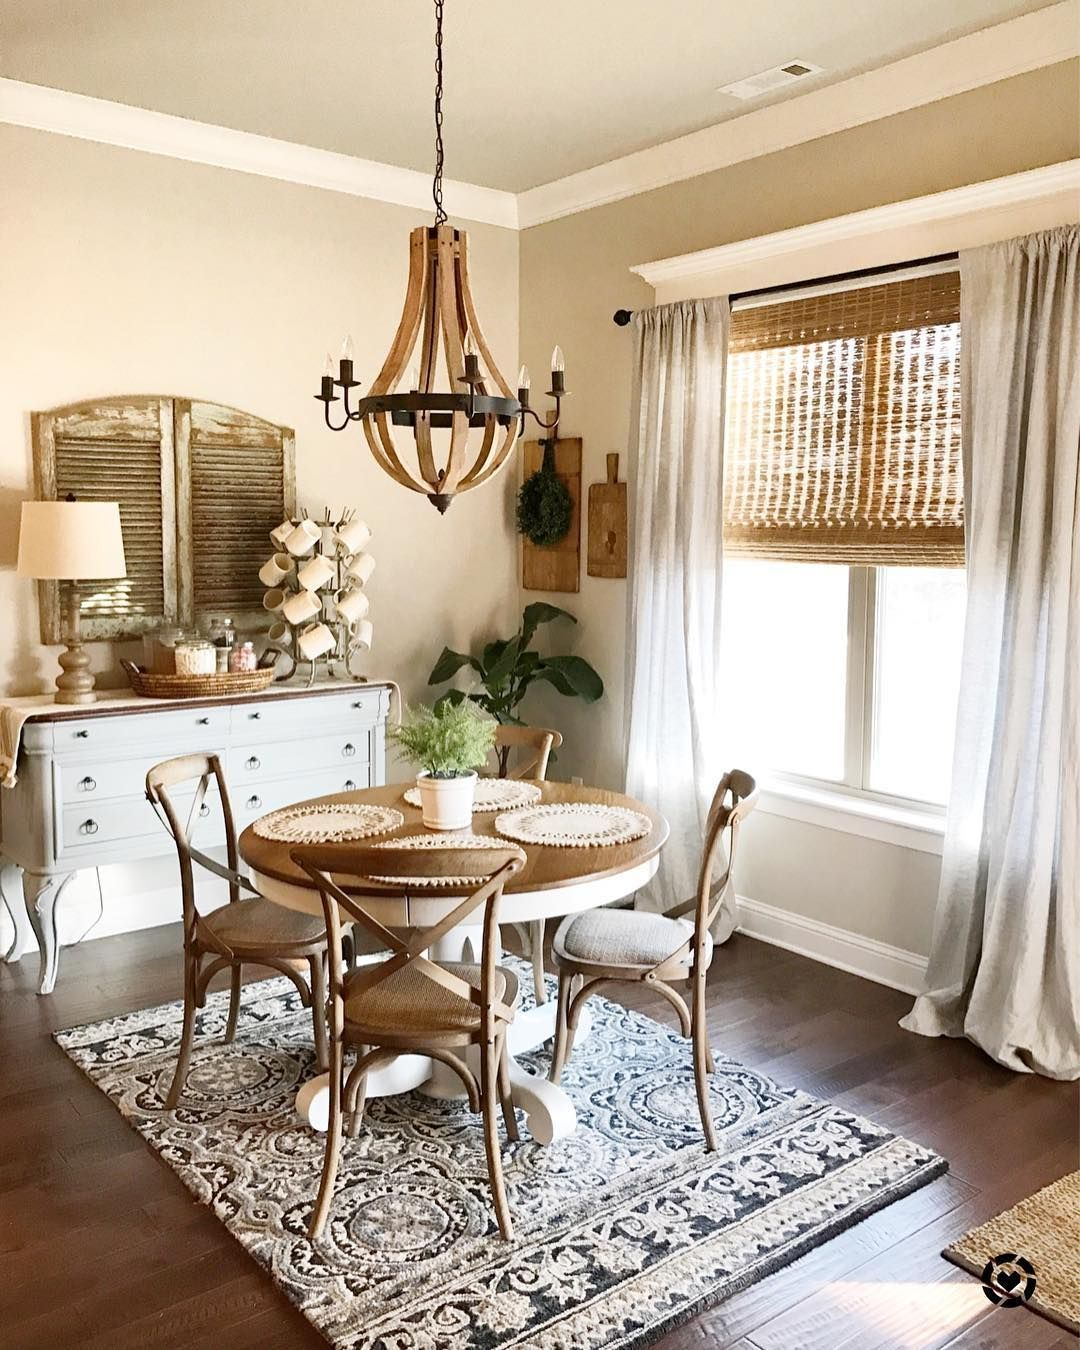 Fantastic Dining Room Decoration Ideas For 2019: 20 Most Fantastic Modern Farmhouse Dining Room Decor Ideas